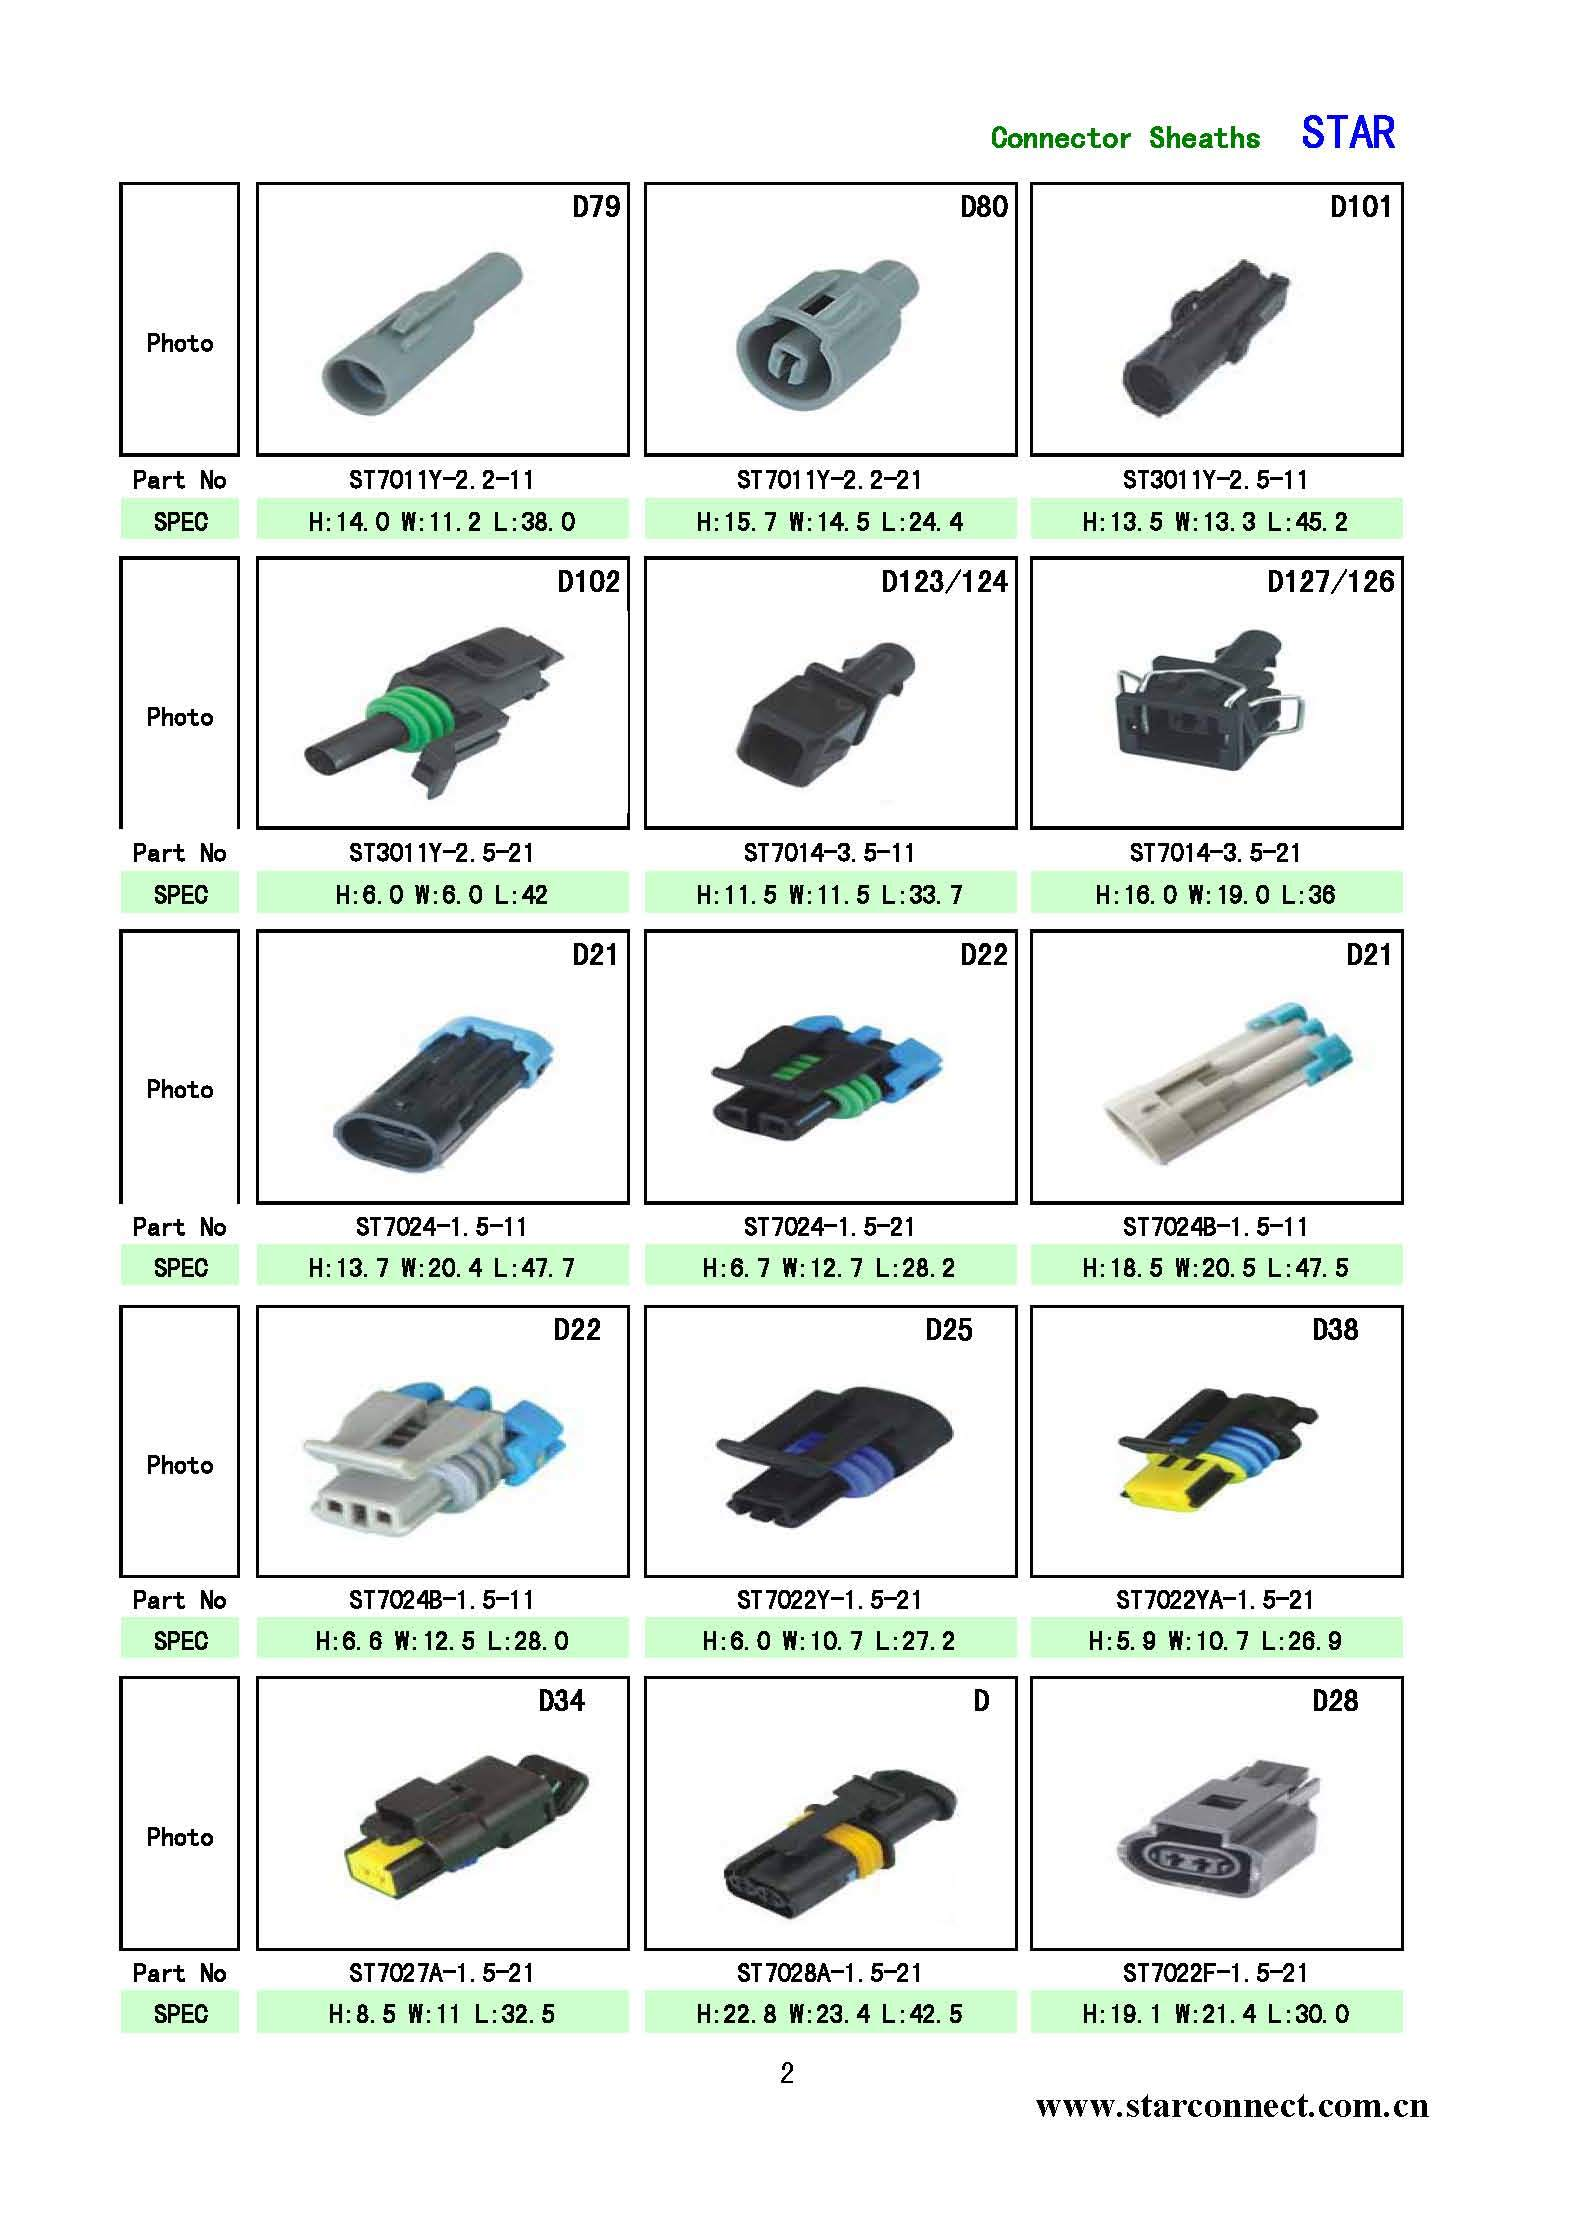 Oem Delphi 10 Pin Auto Wiring Harness Connector Pins China 48 Car Male Wire If You Cant Find The Exact Product Need In Picturesplease Dont Go Awayjust Contact Me Freely Or Send Your Sample And Drawing To Us